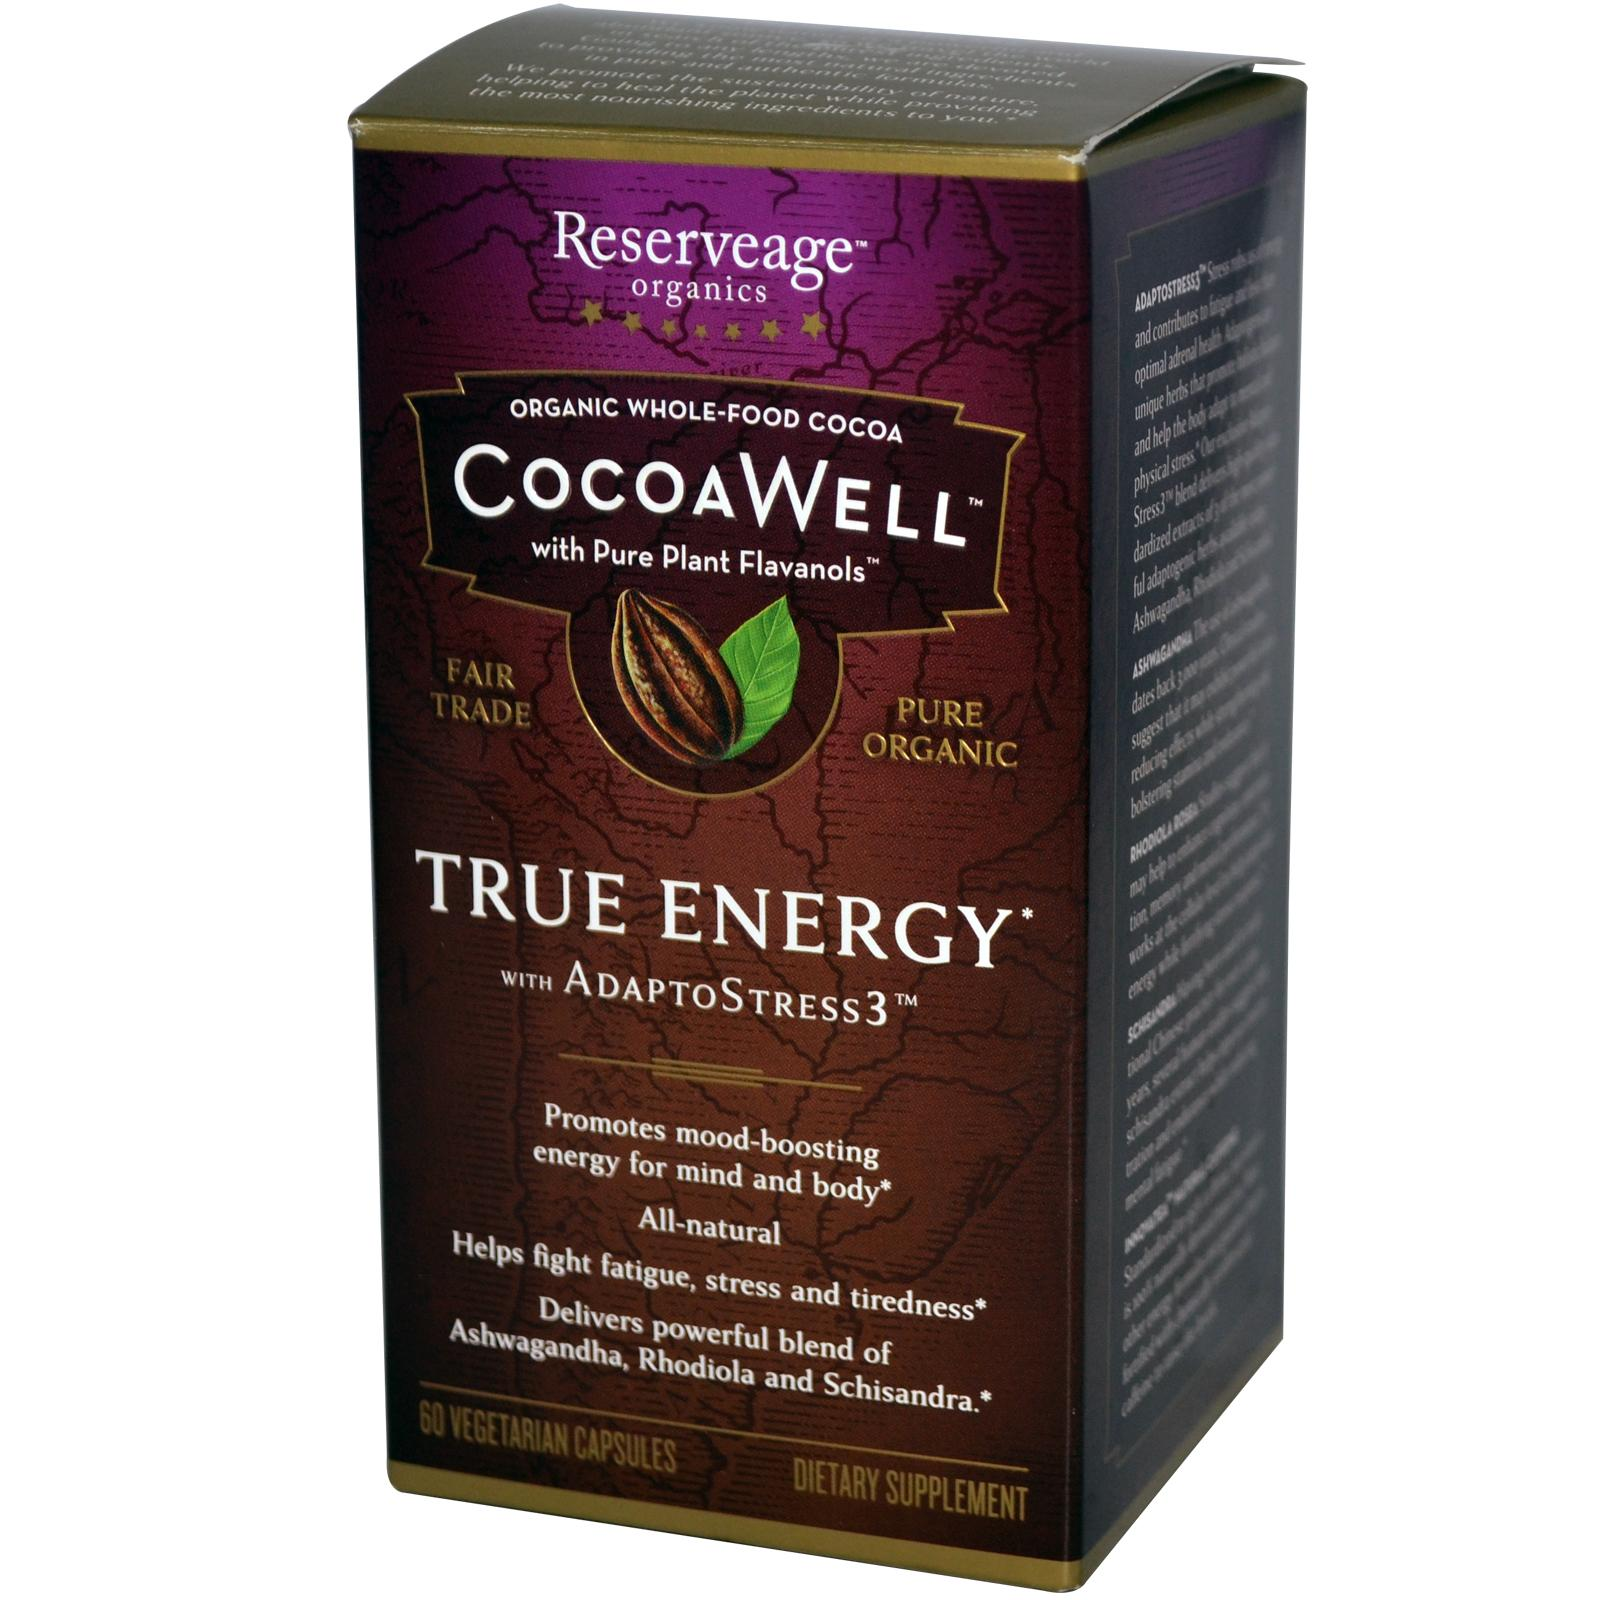 CocoaWell True Energy with AdaptoStress3